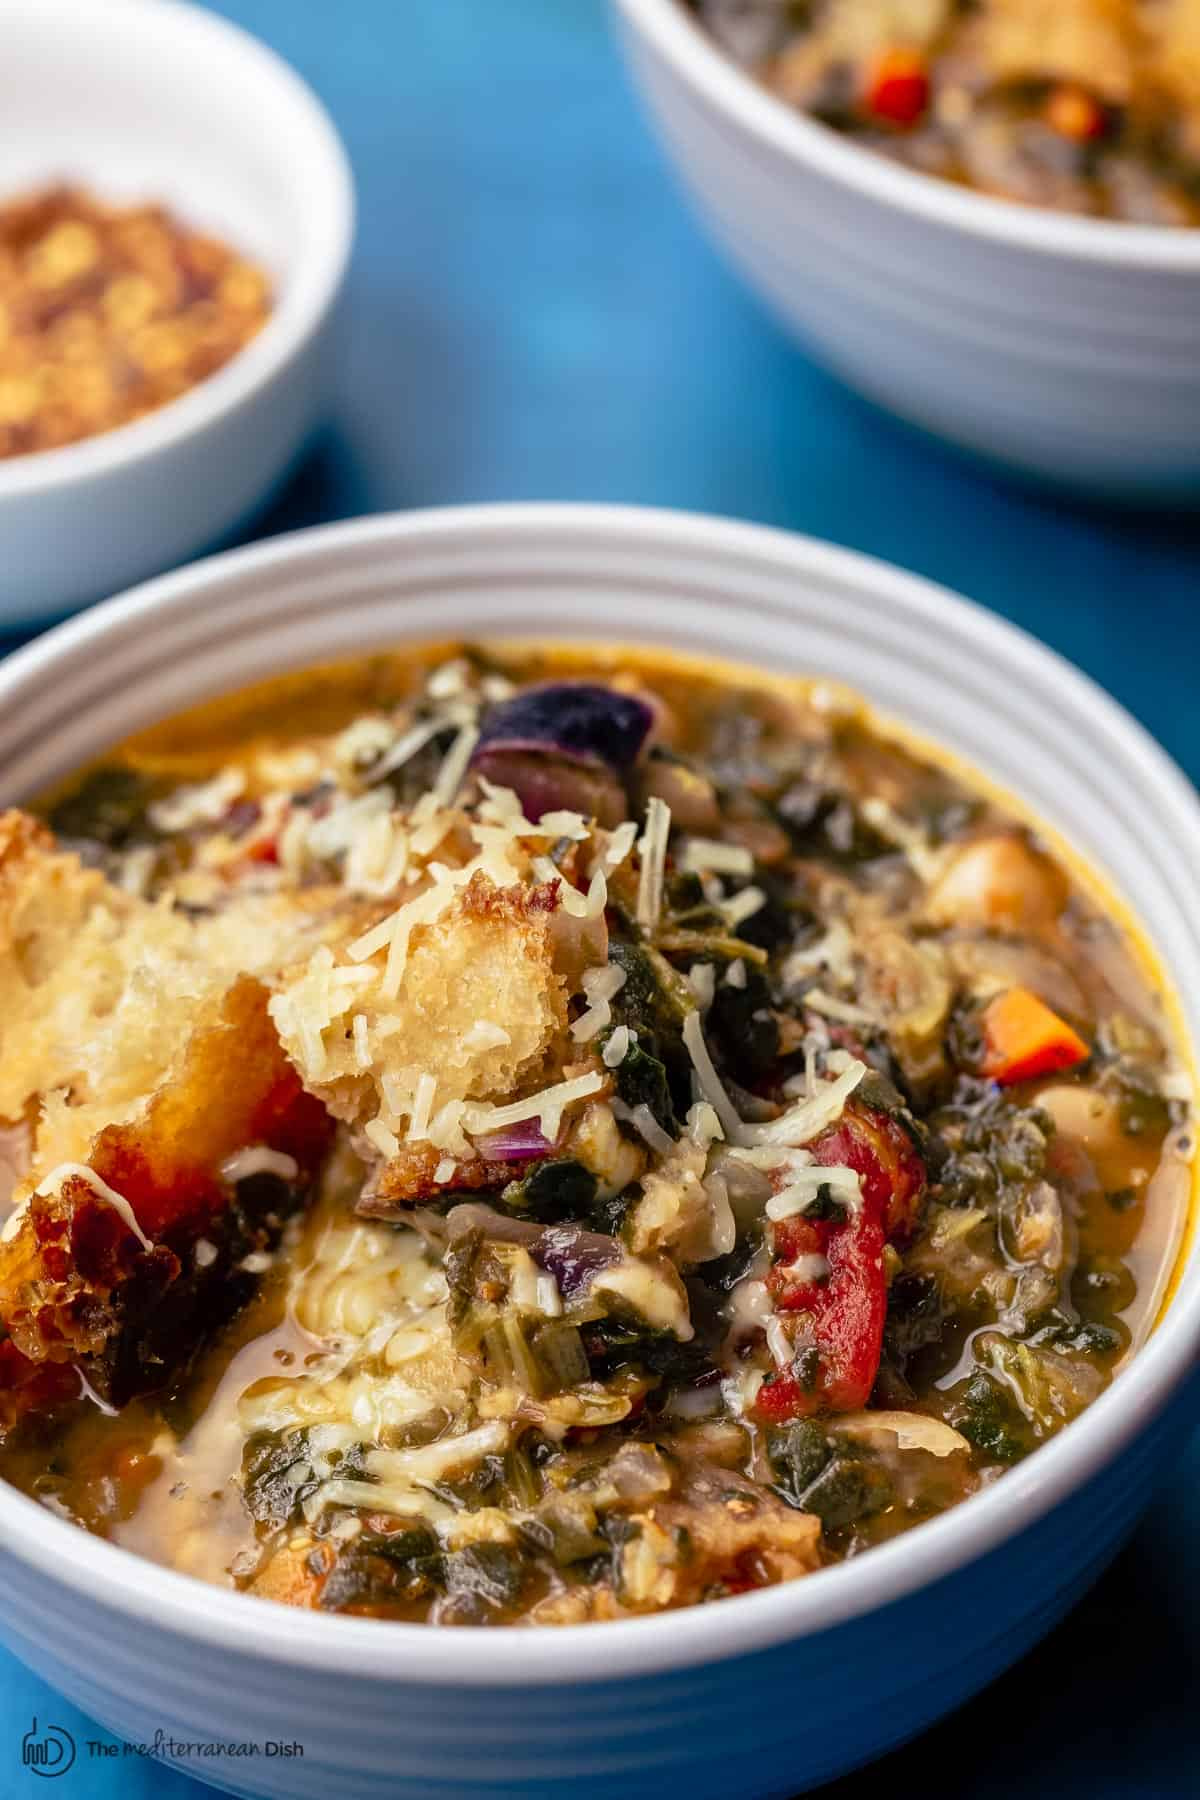 Ribollita in serving bowls with a side of crushed red pepper flakes